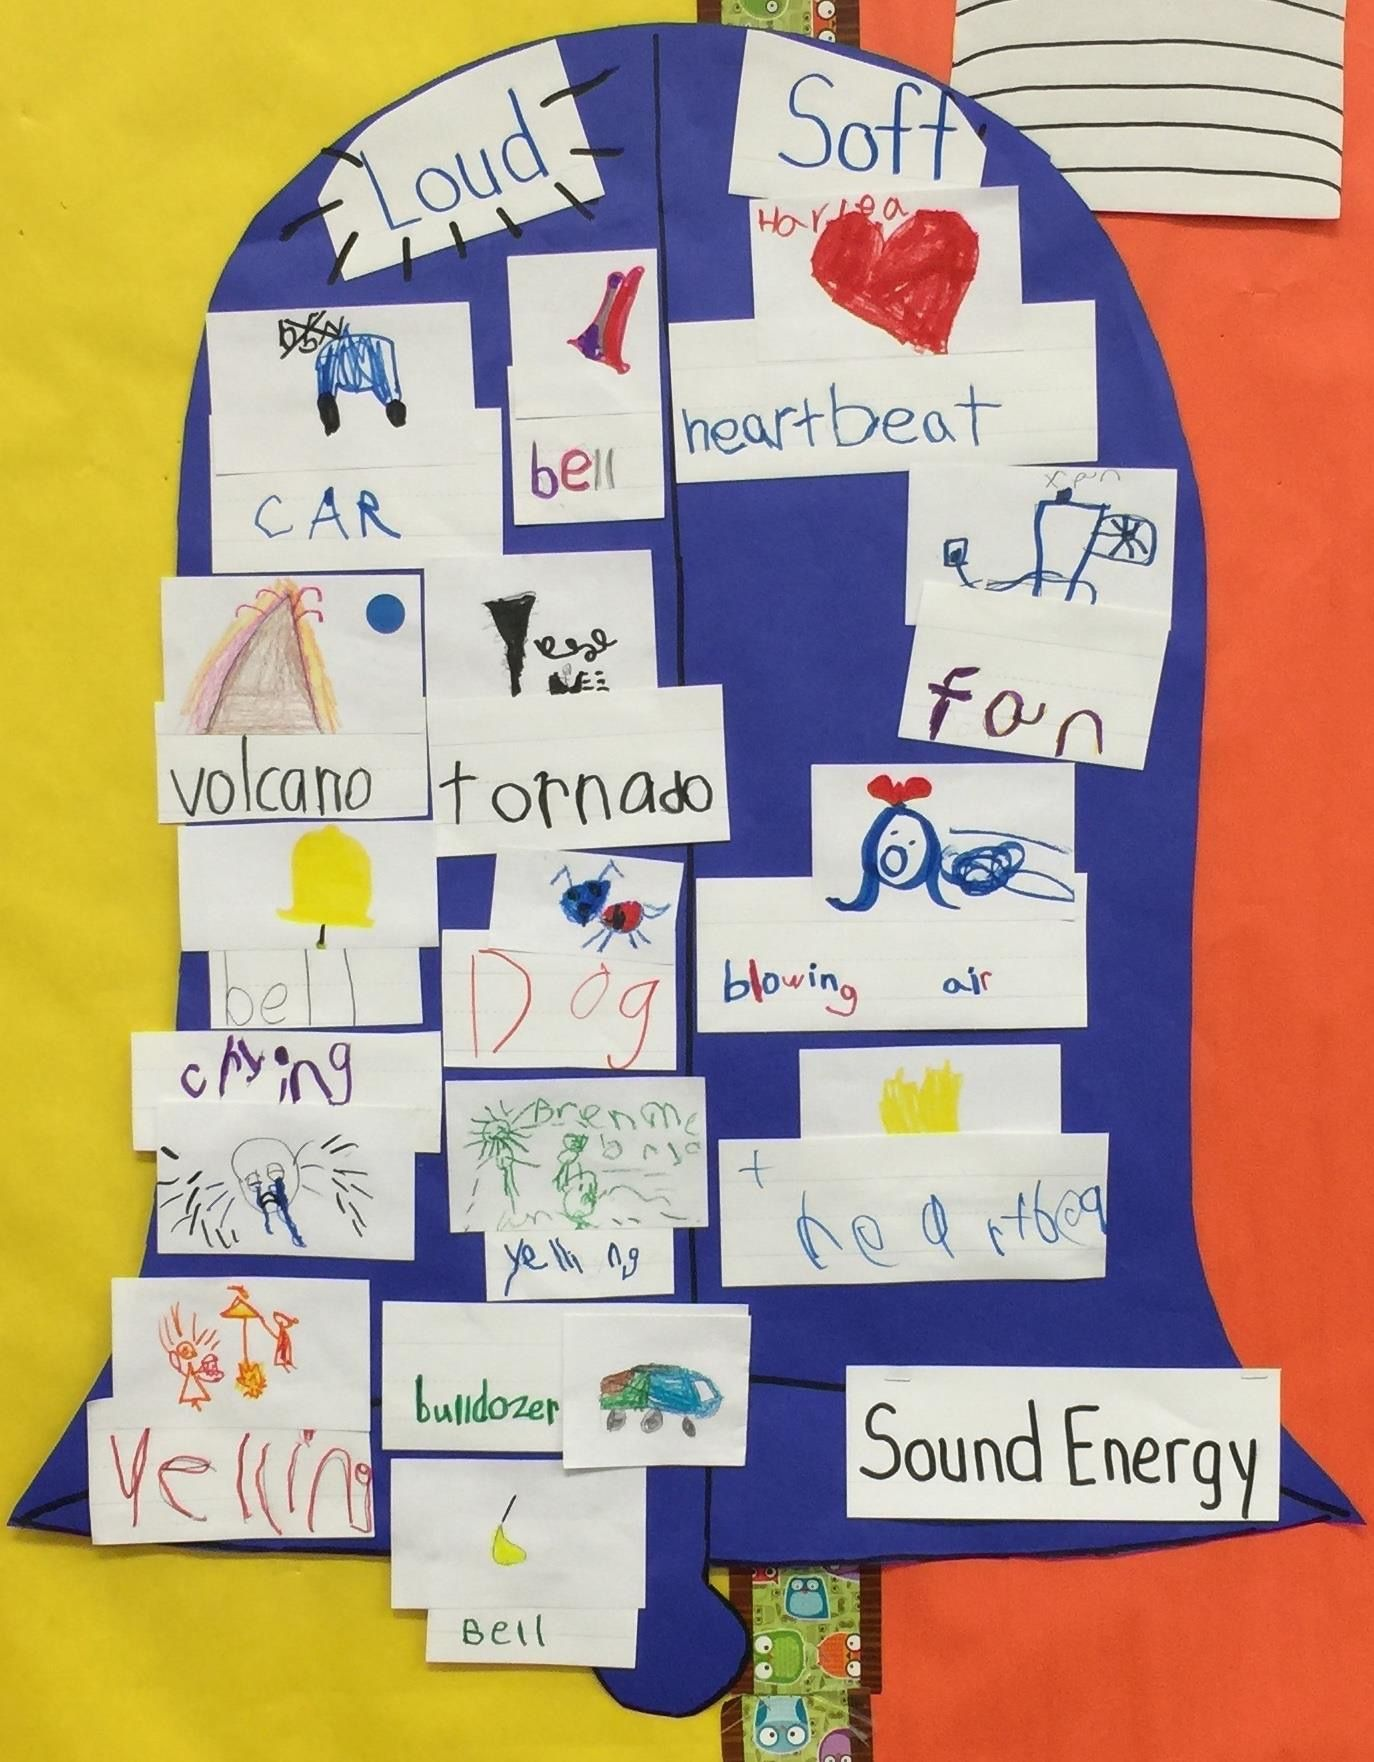 Pin By Melissa Galban On General School Science Word Wall Sound Energy Word Wall [ 1762 x 1374 Pixel ]